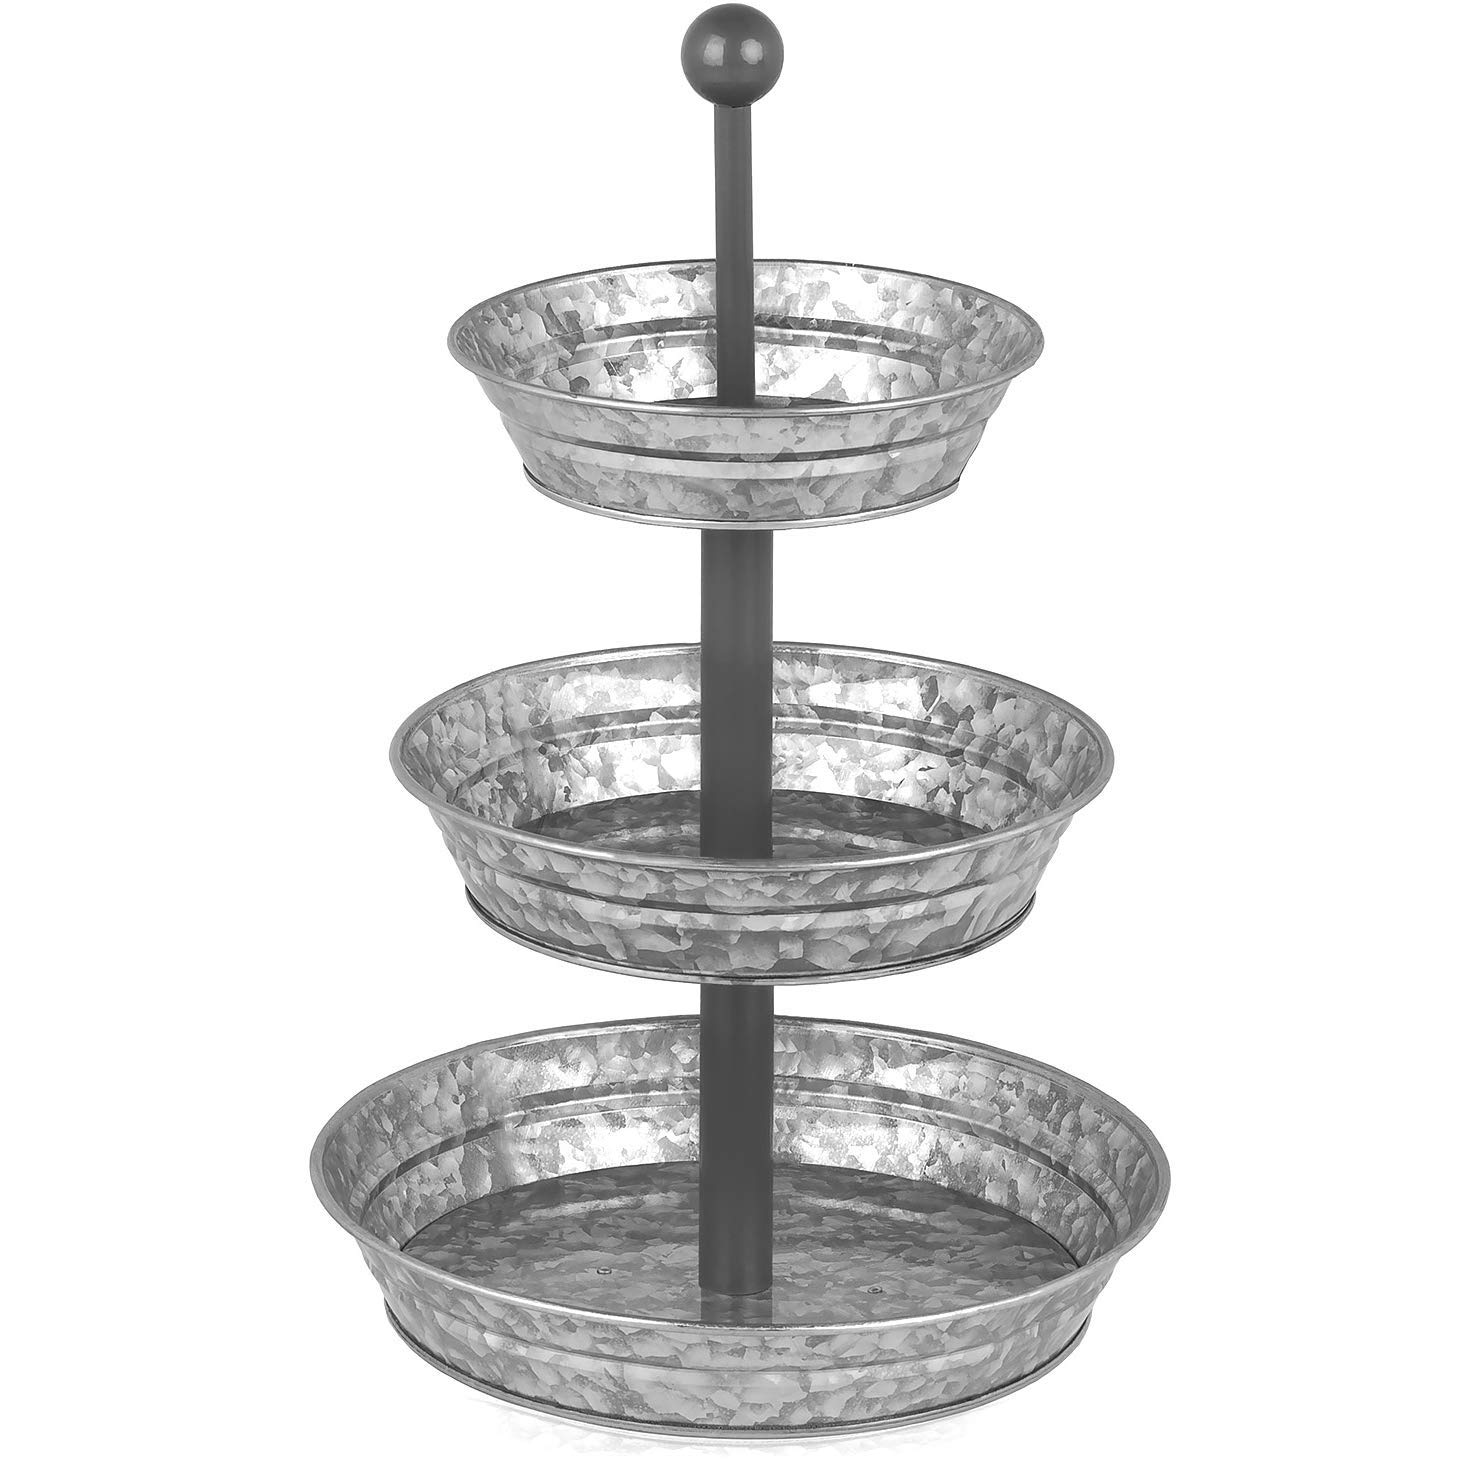 3 Tier Serving Tray - Galvanized, Rustic Metal Stand. Dessert, Cupcake, Fruit & Party Three Tiered Platter. Country Farmhouse Vintage Decor for the Kitchen, Home, Farm & Outdoor by Hallops by Hallops